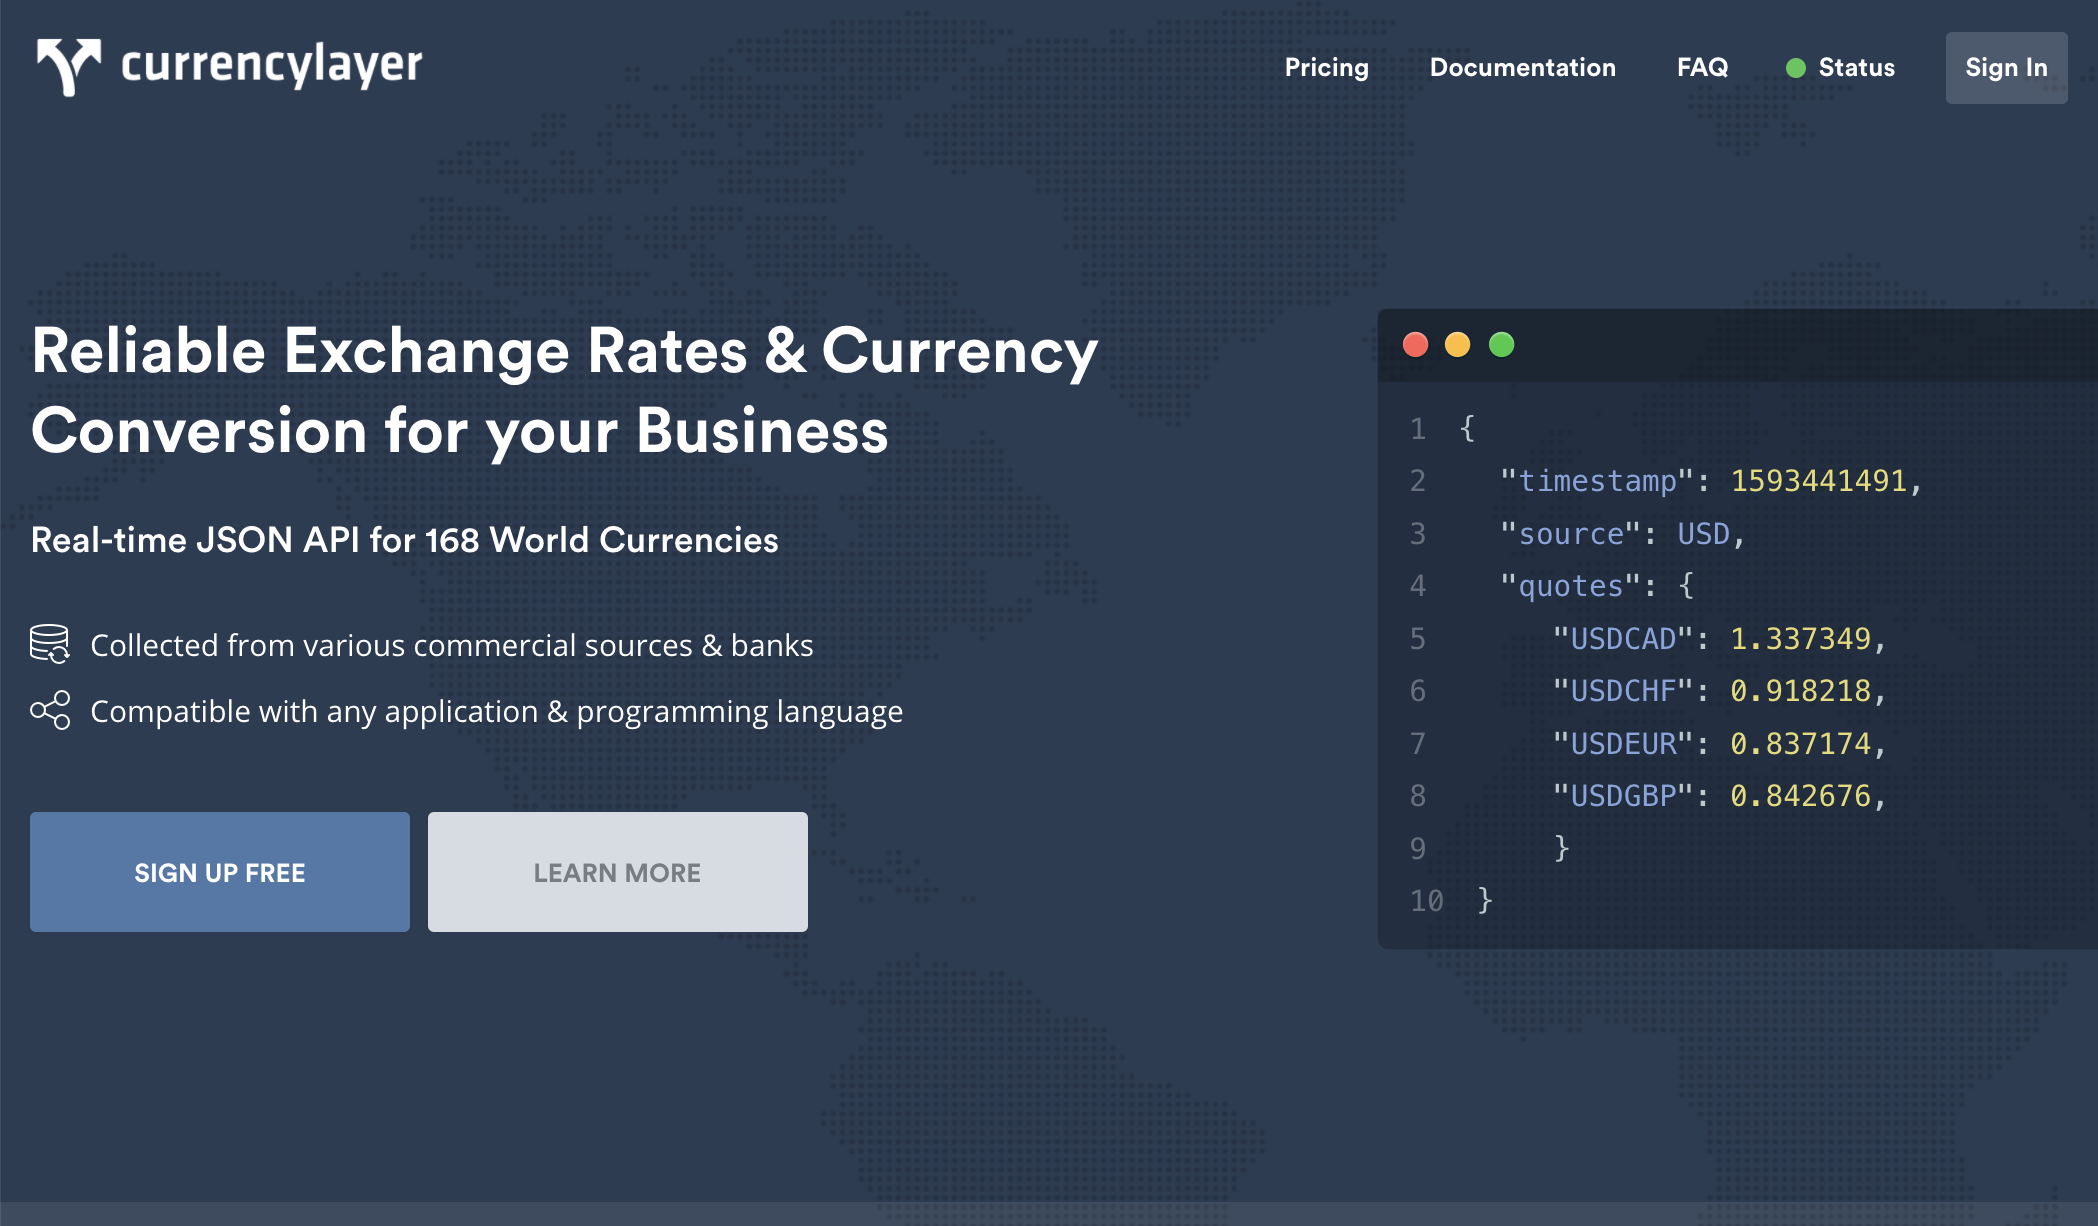 Currencylayer exchange rate and currency conversion API